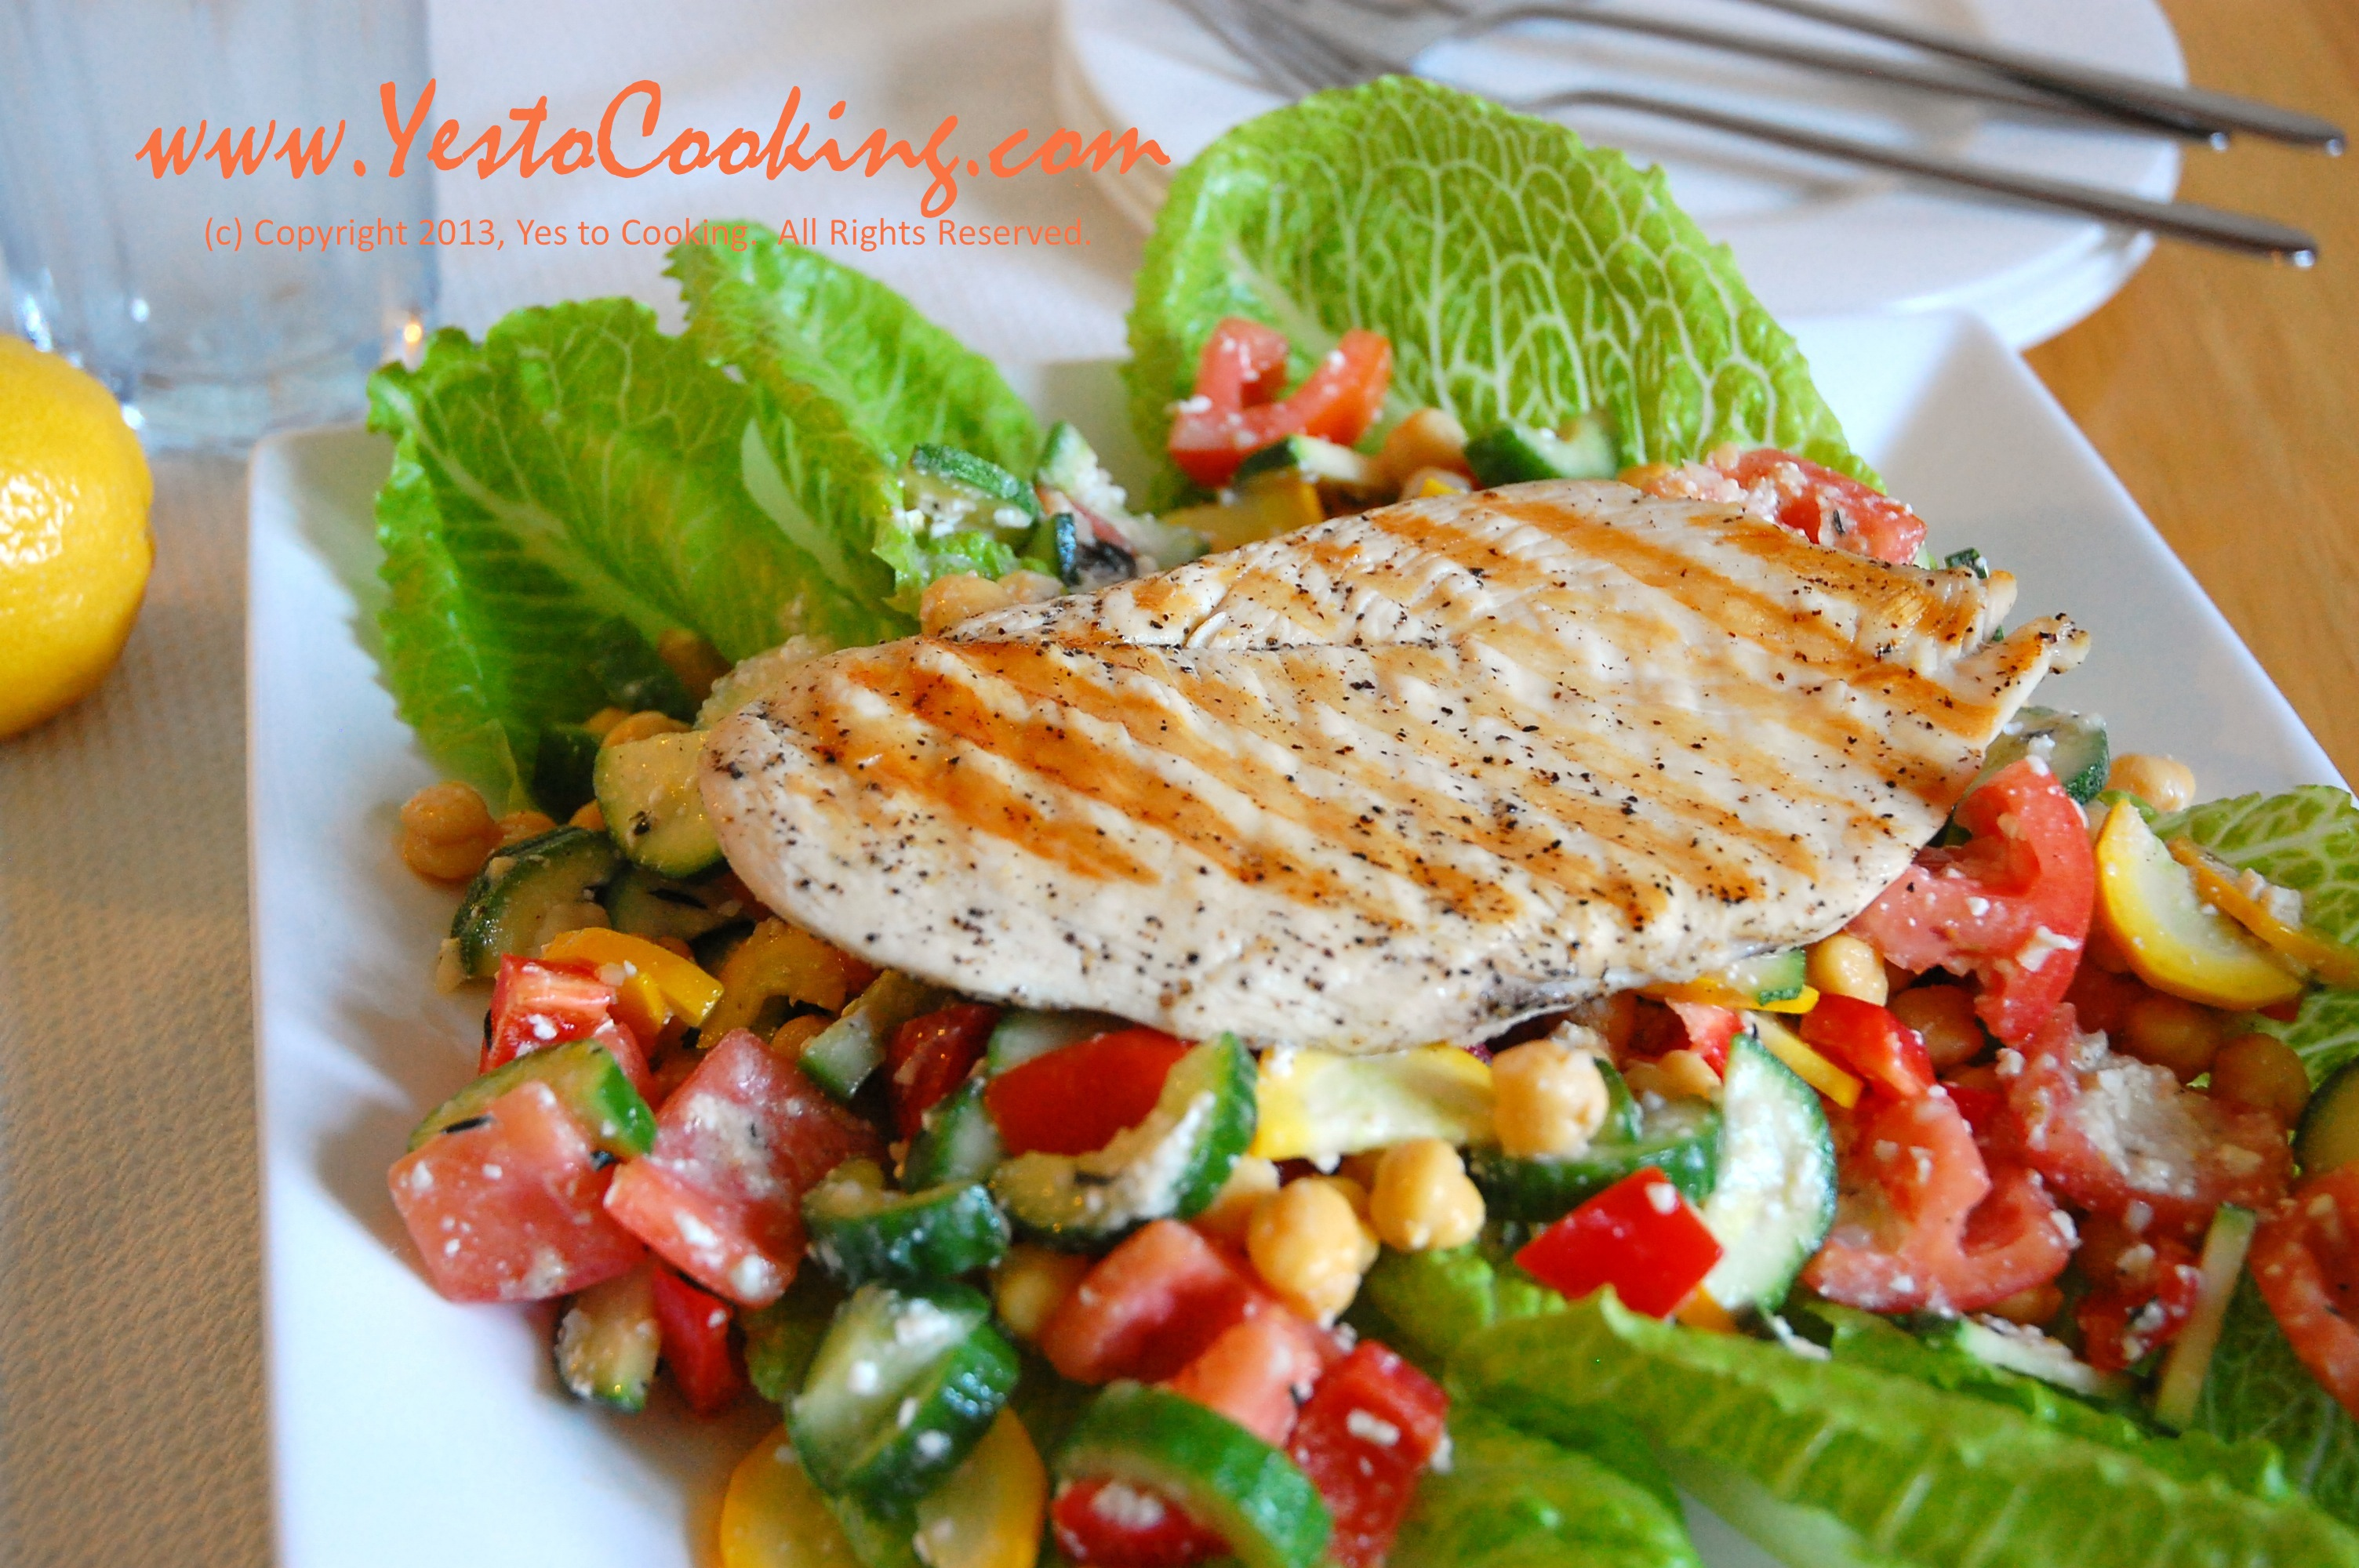 Grilled Chicken Greek Salad | Yes To Cooking